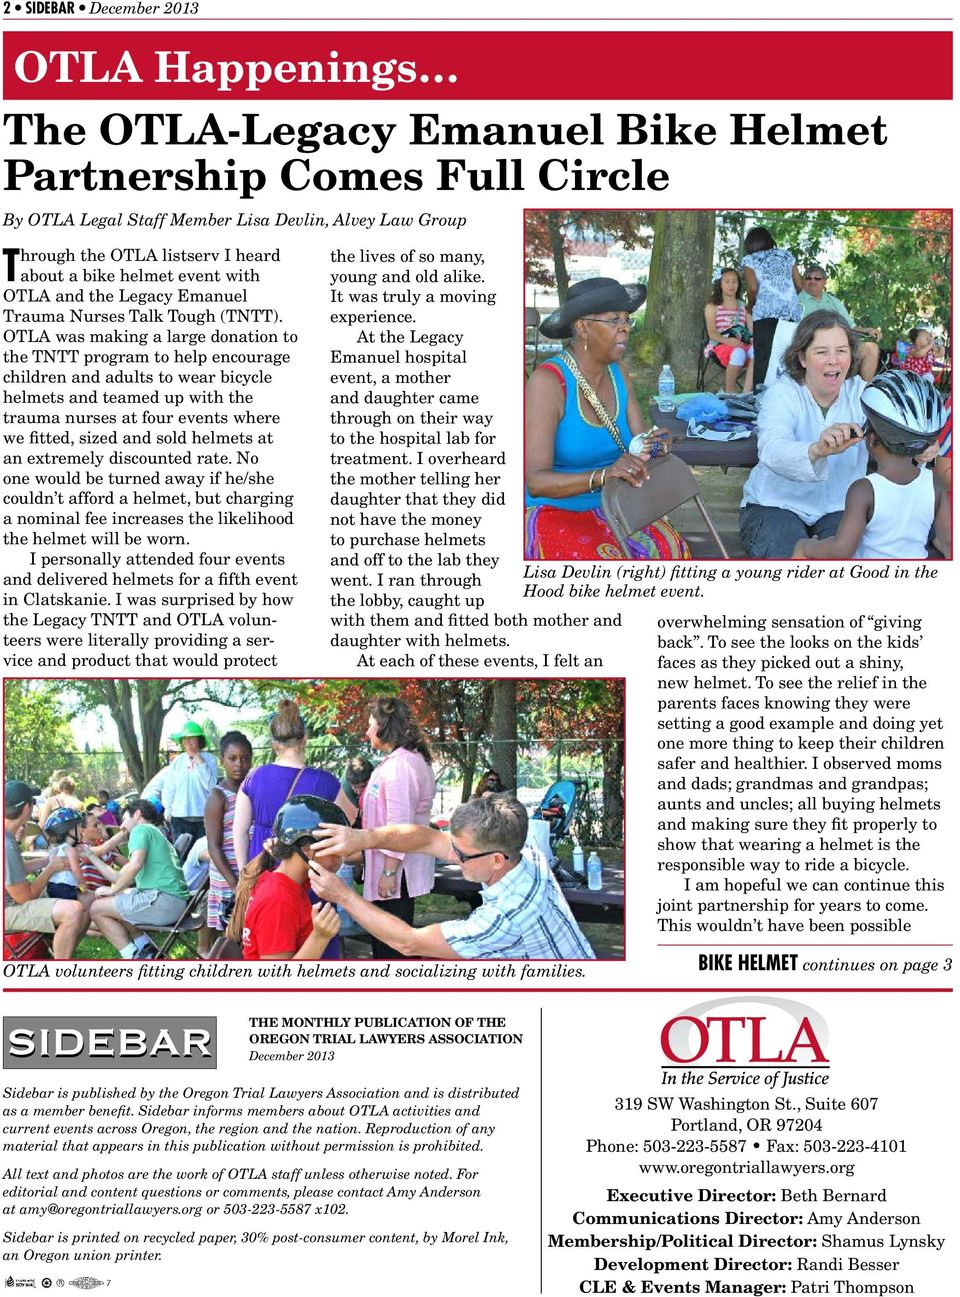 OTLA was making a large donation to the TNTT program to help encourage children and adults to wear bicycle helmets and teamed up with the trauma nurses at four events where we fitted, sized and sold